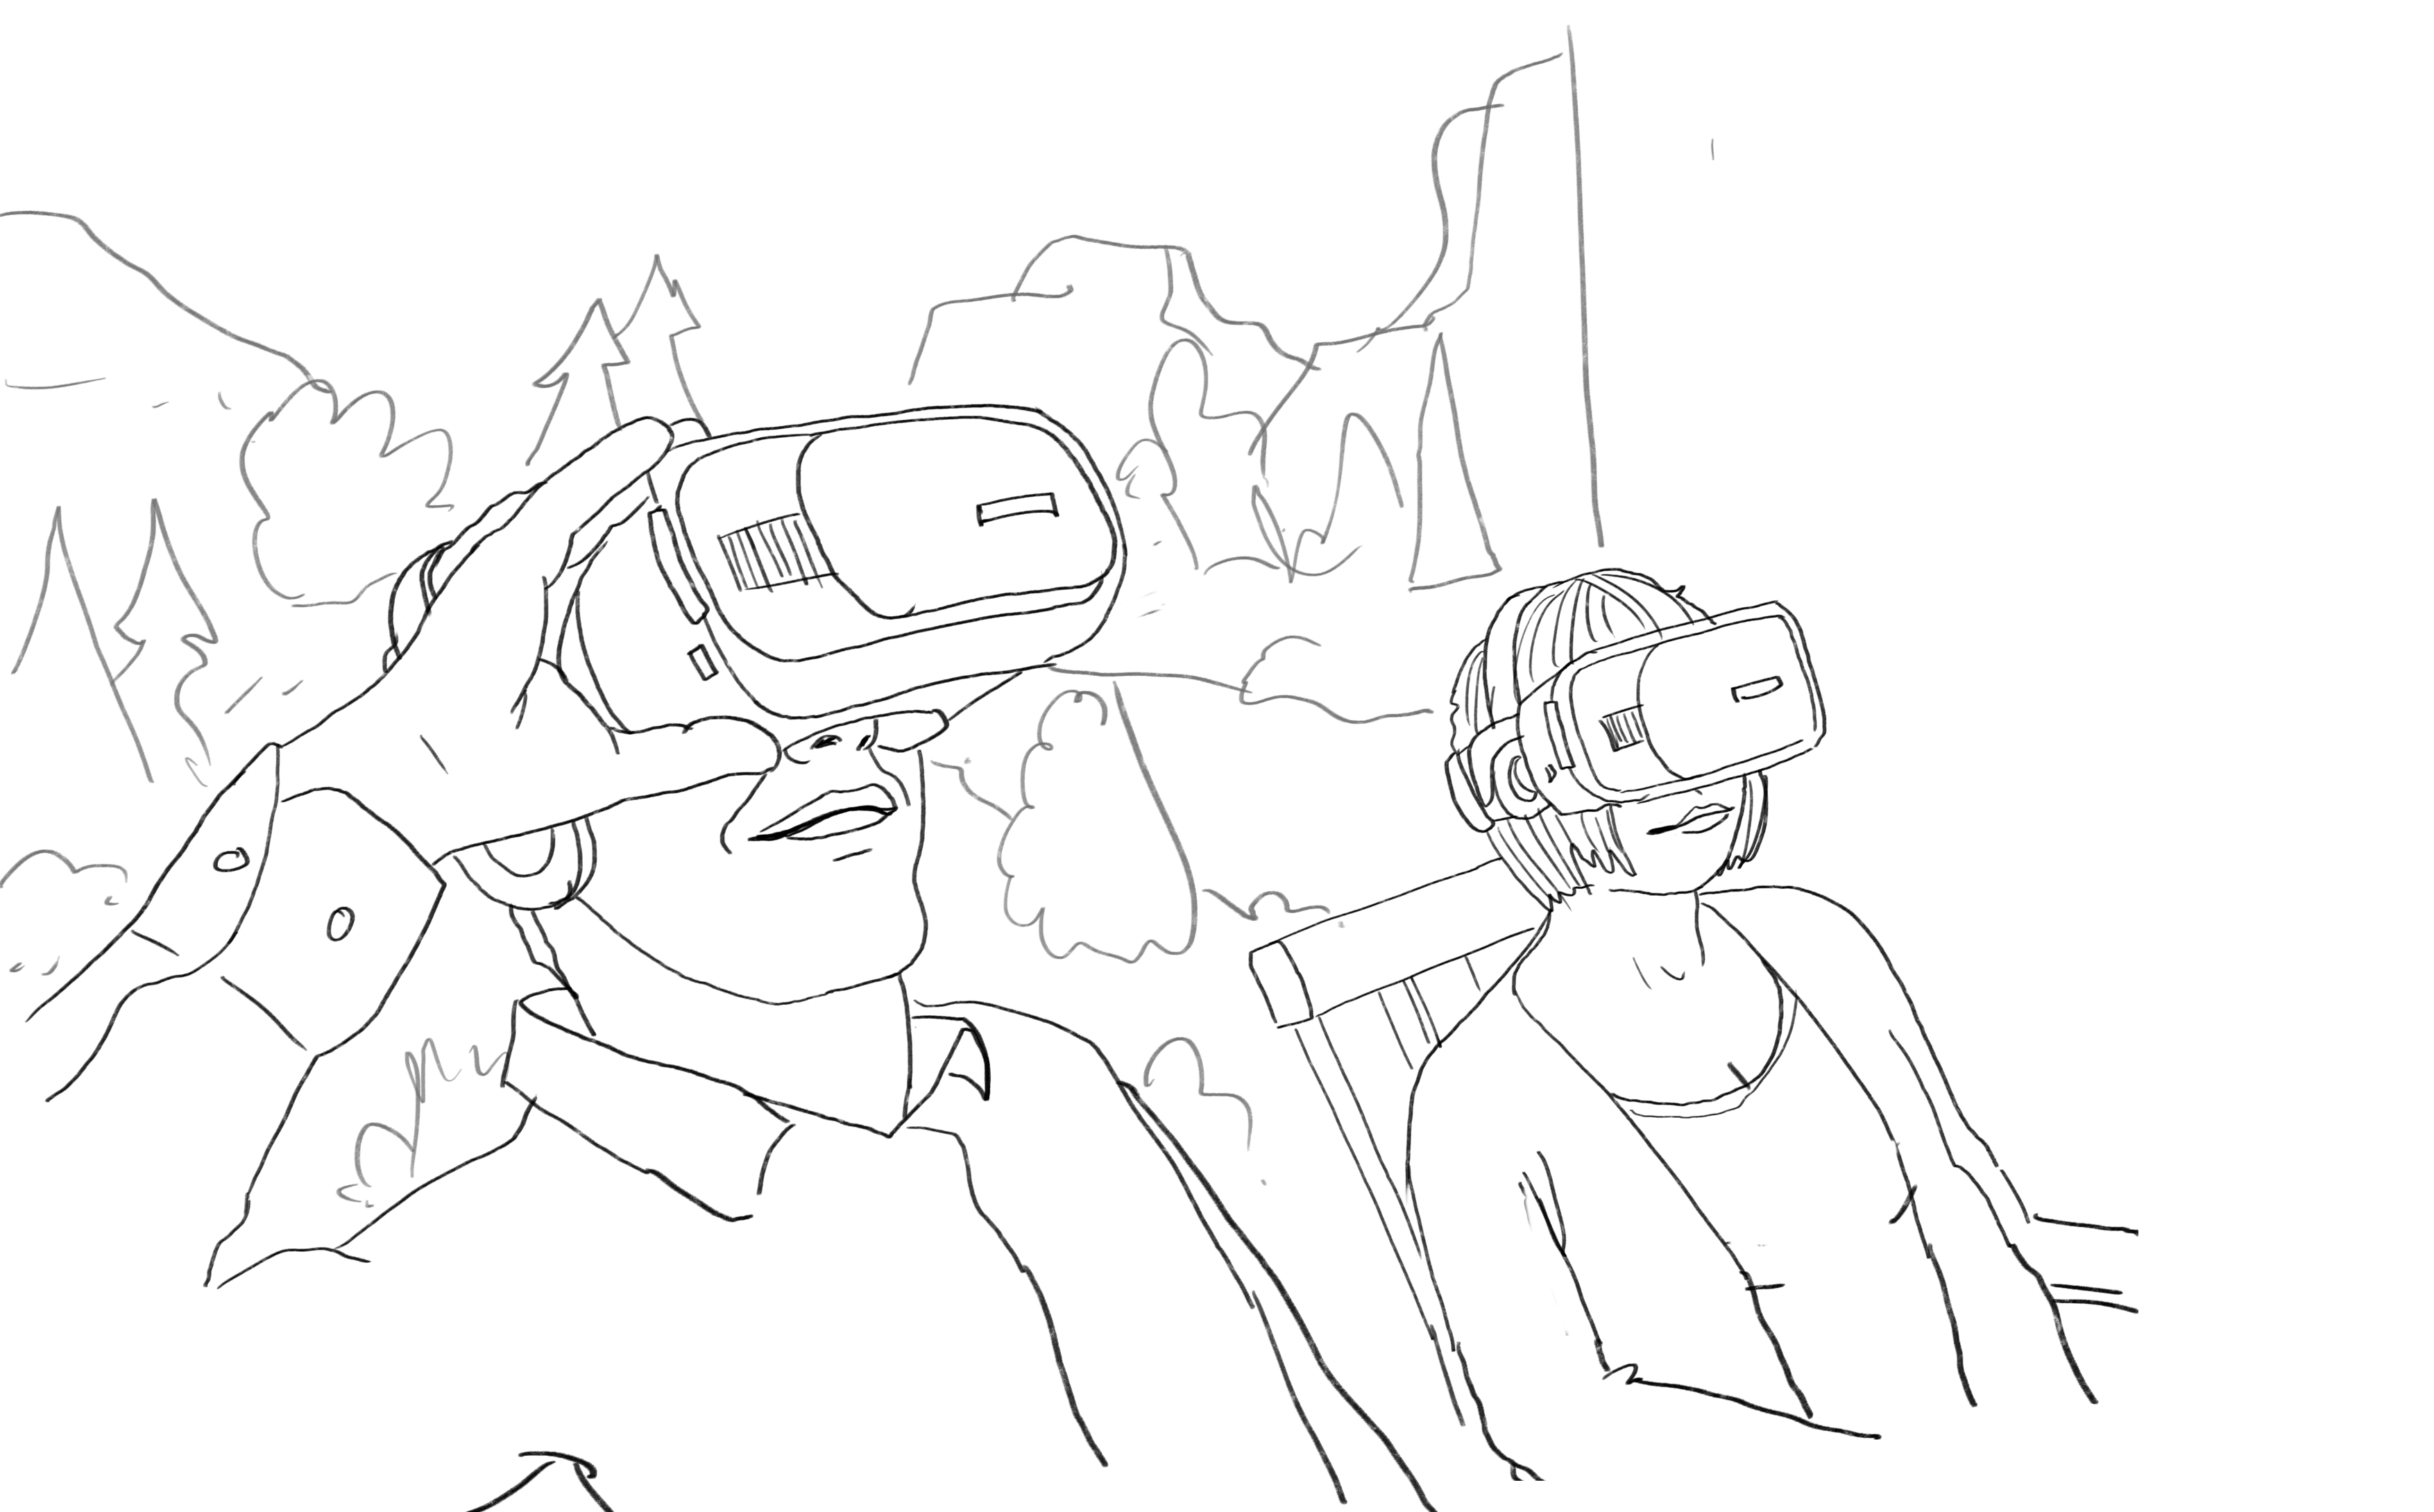 Mindfulness VR-experience